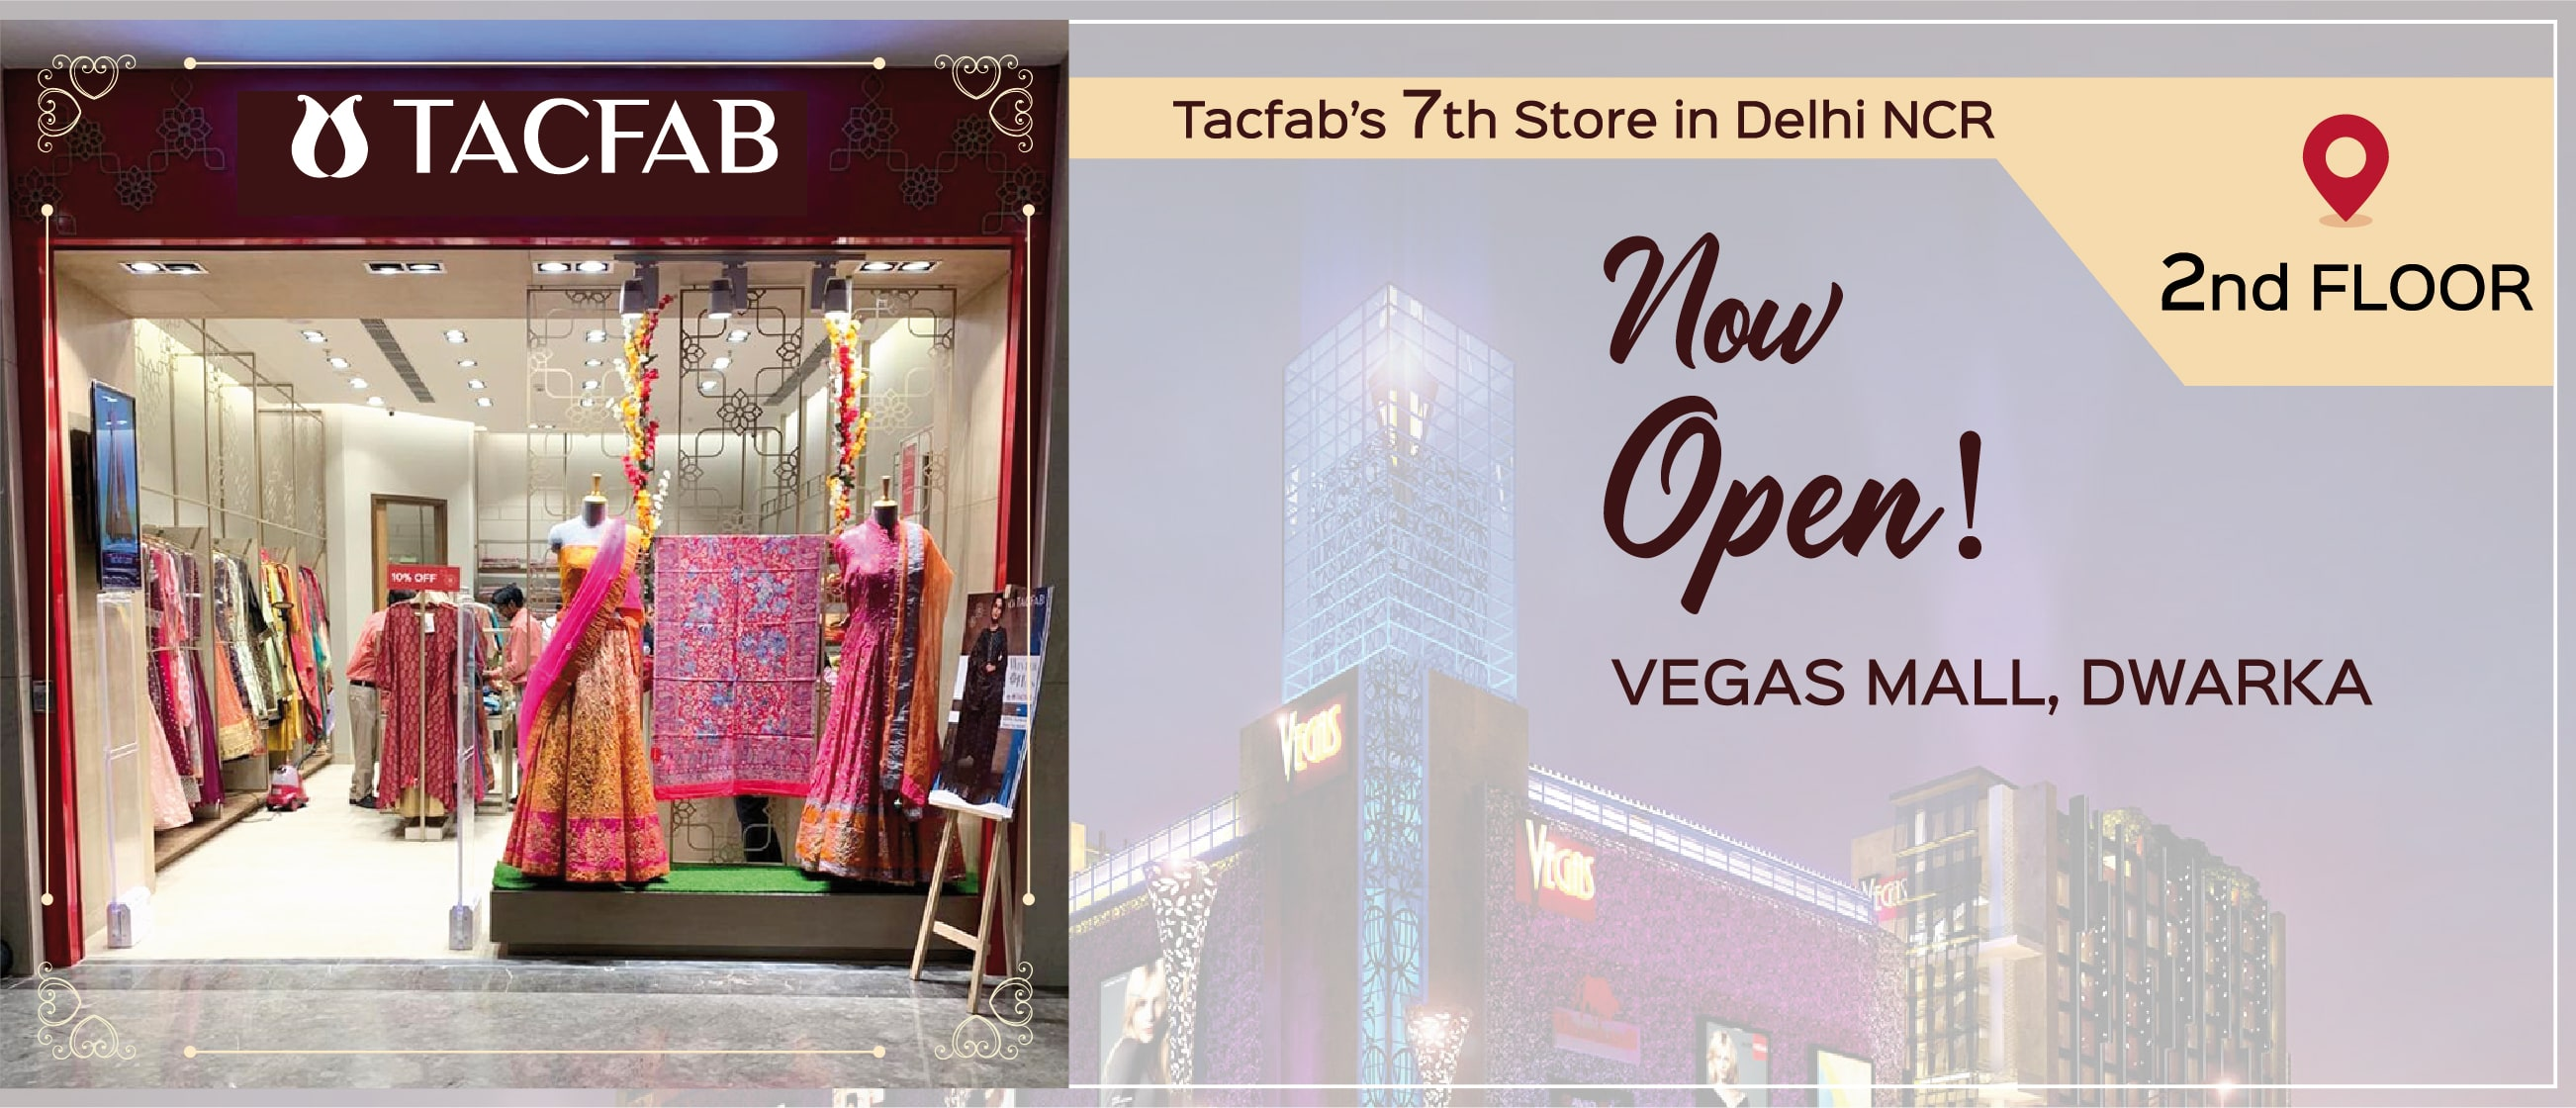 Tacfab's 7th Store in Delhi NCR Now Open at Vegas Mall, Dwarka